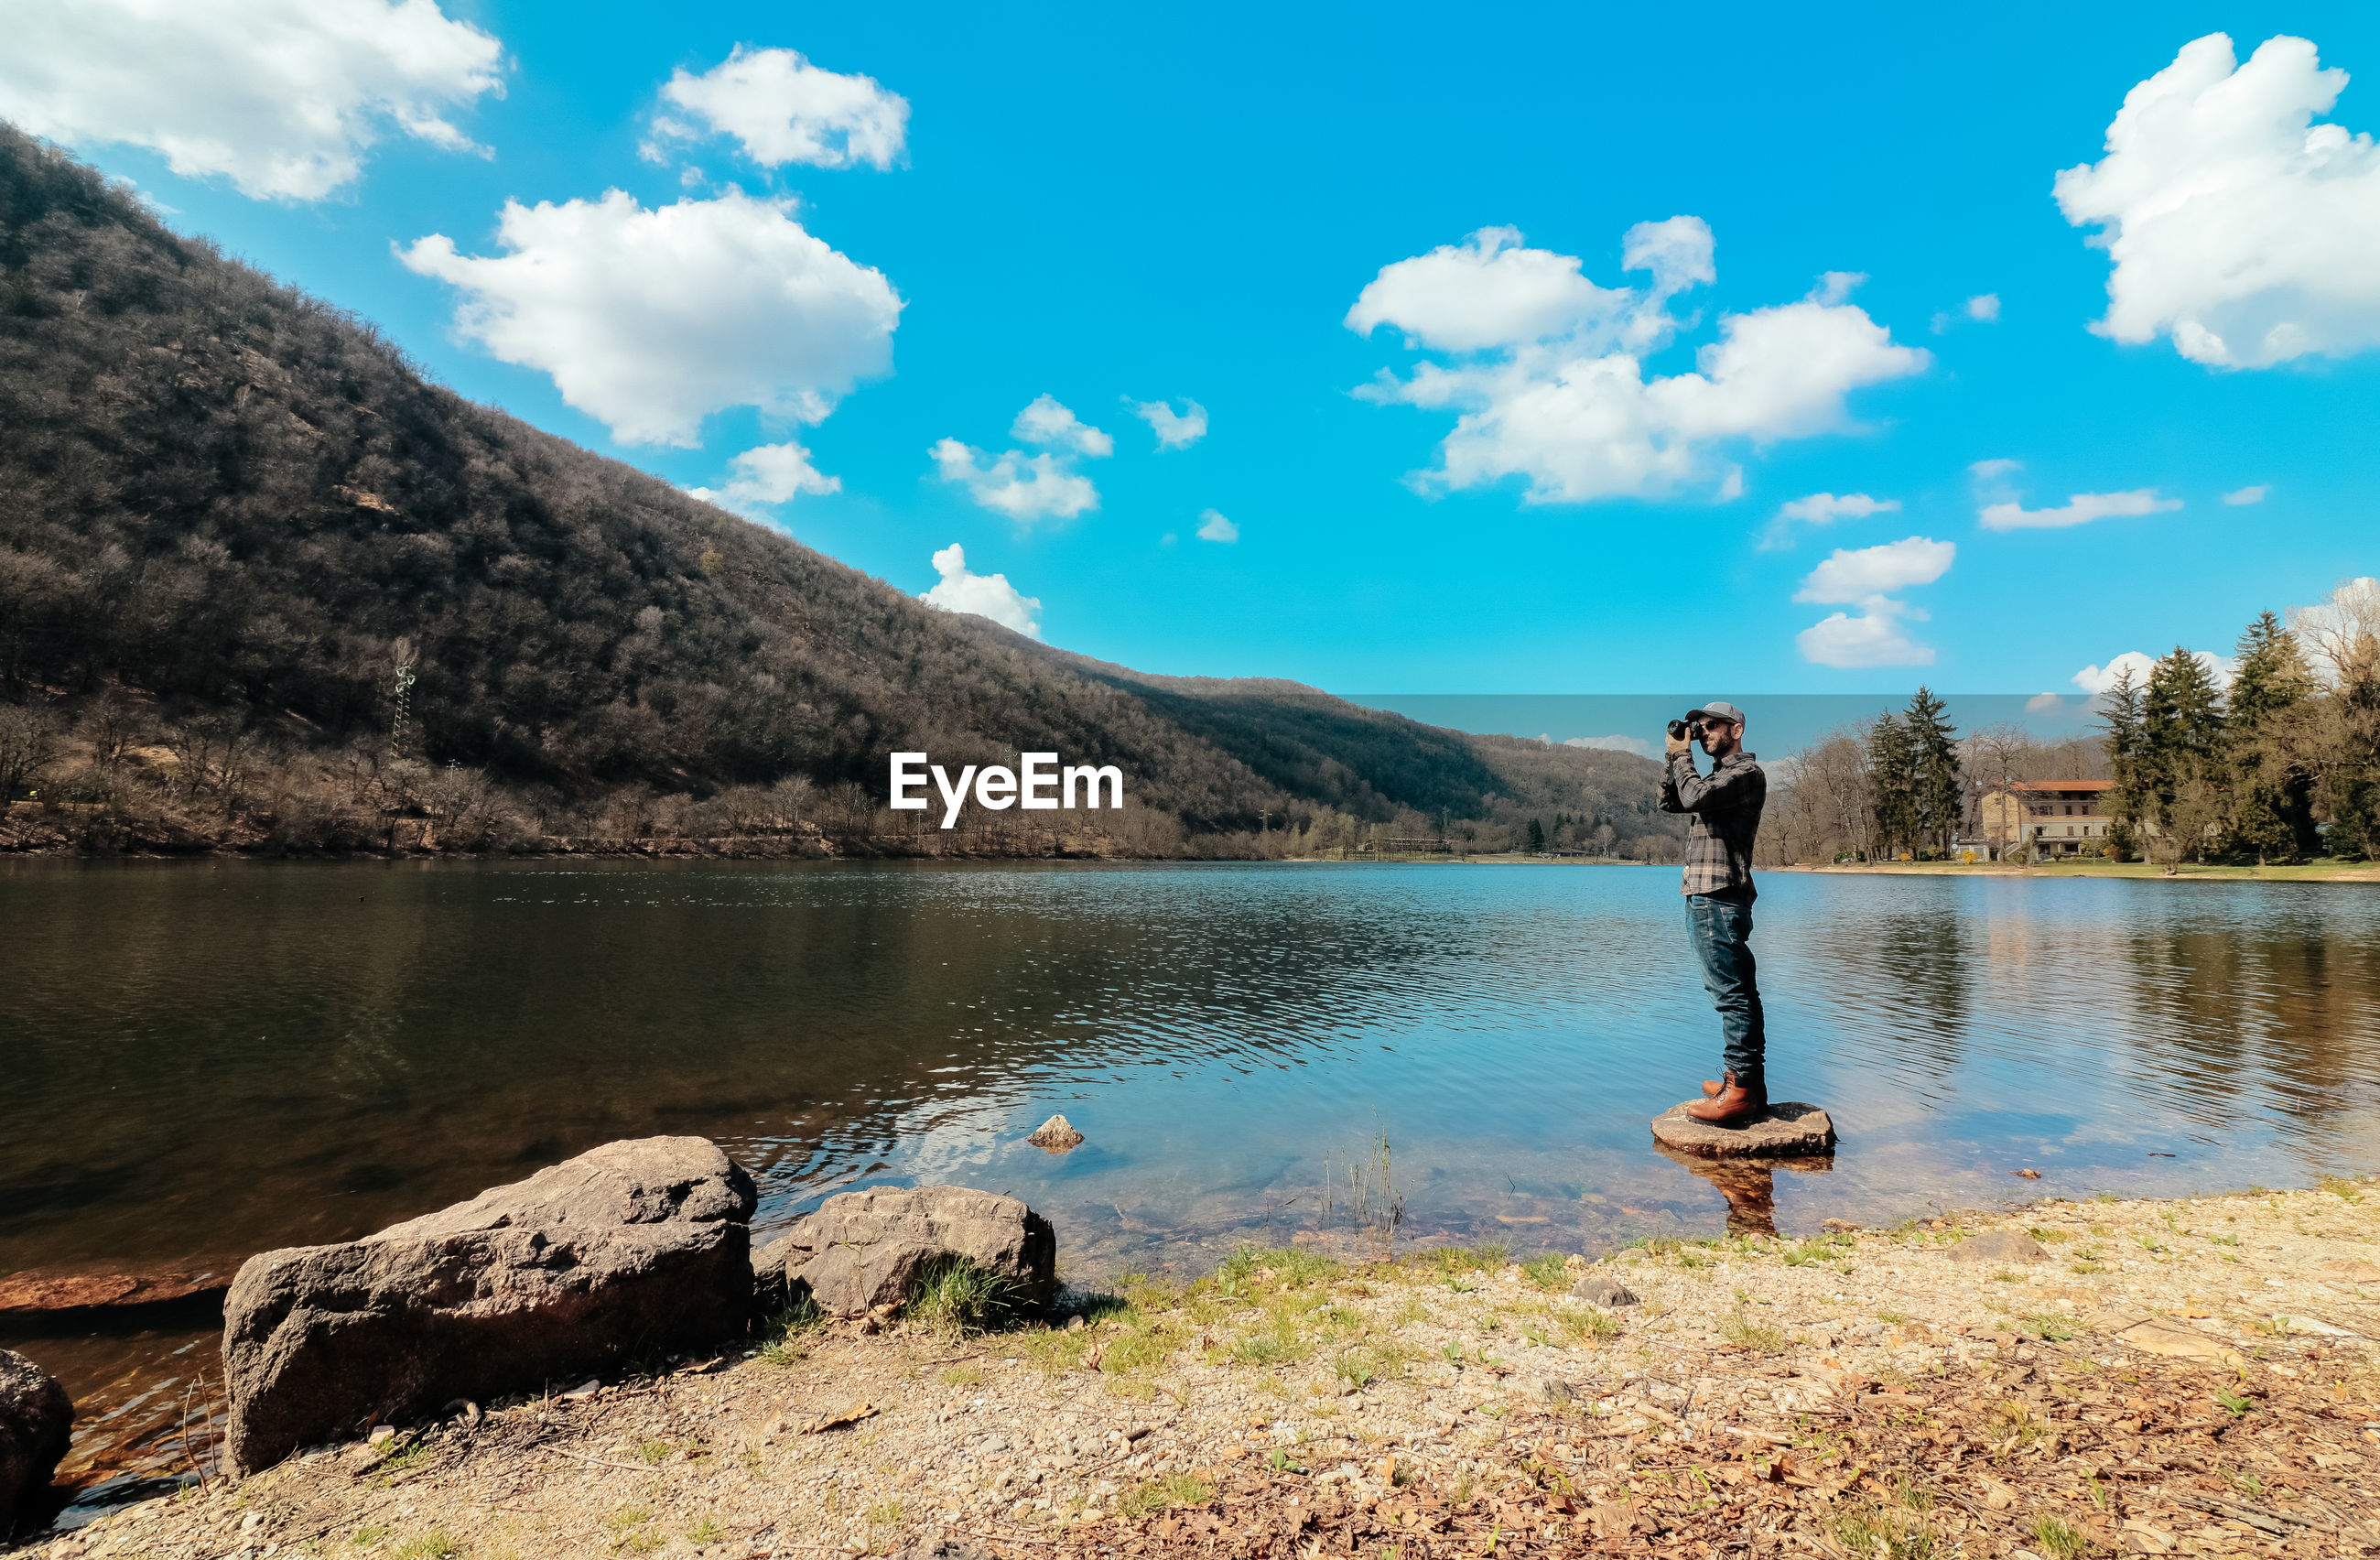 MAN STANDING BY LAKE AGAINST MOUNTAIN